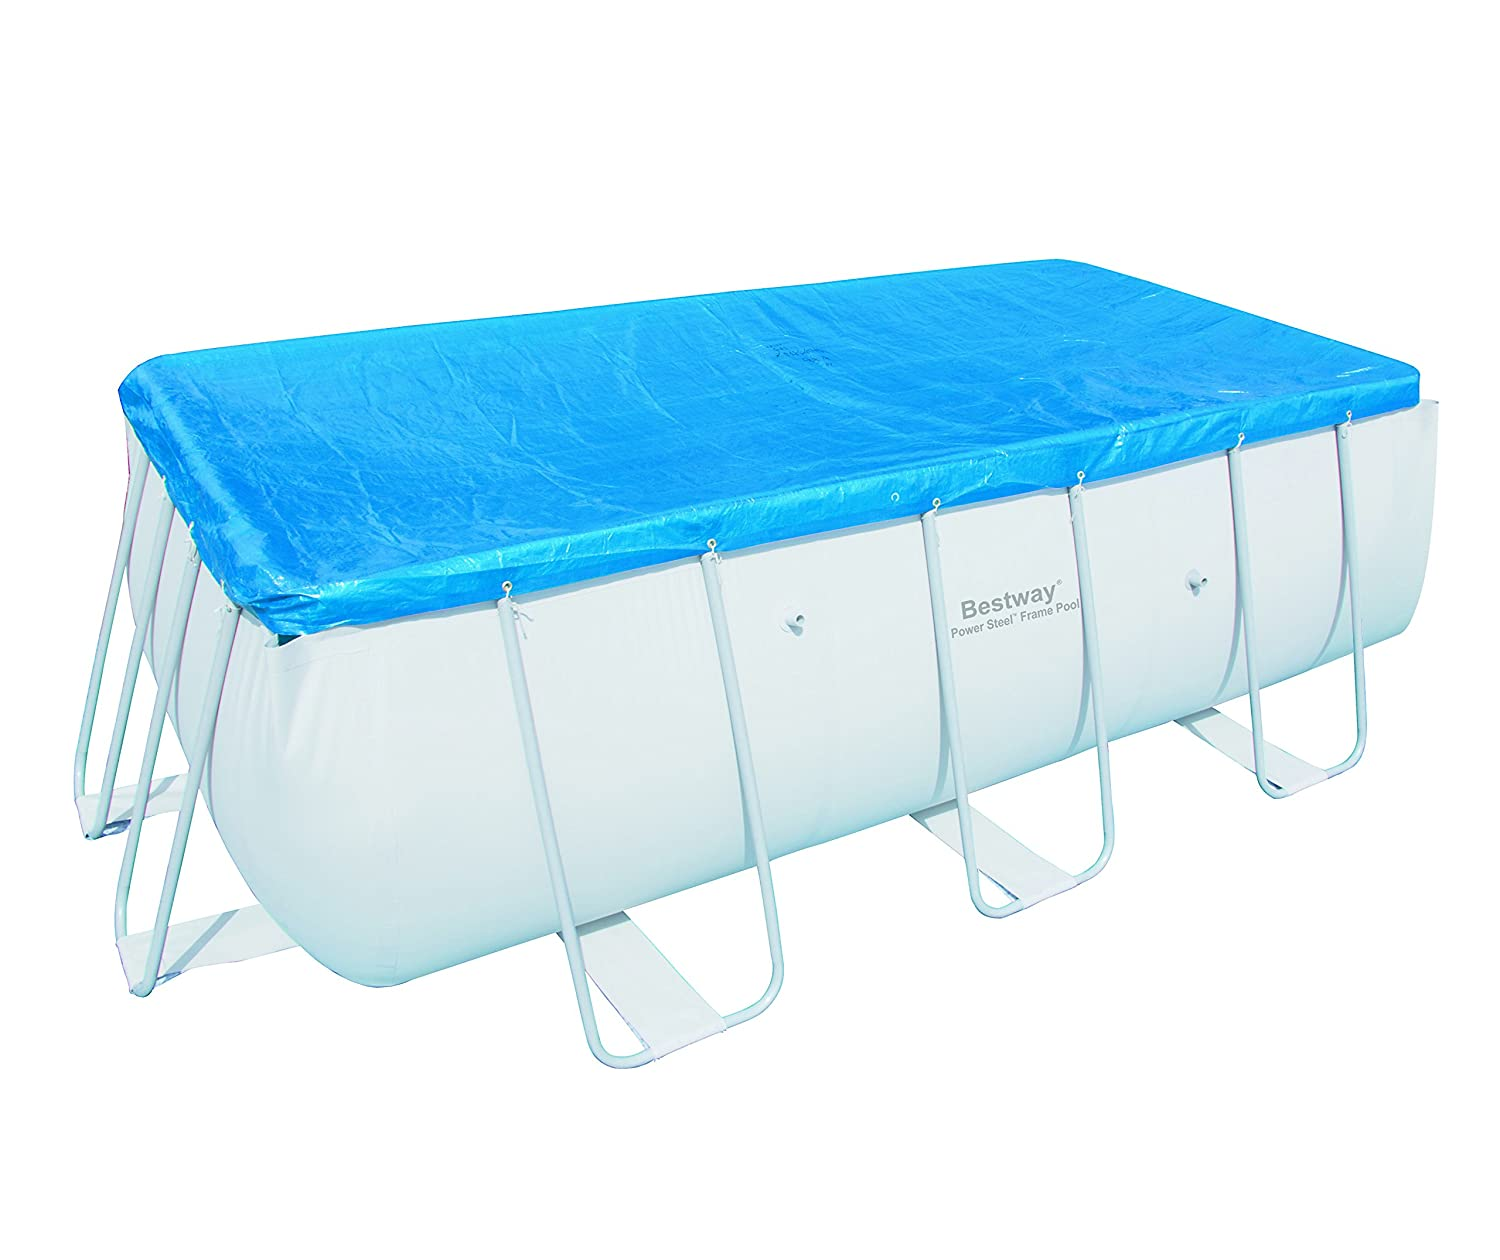 Piscine bestway rectangulaire for Achat piscine tubulaire rectangulaire